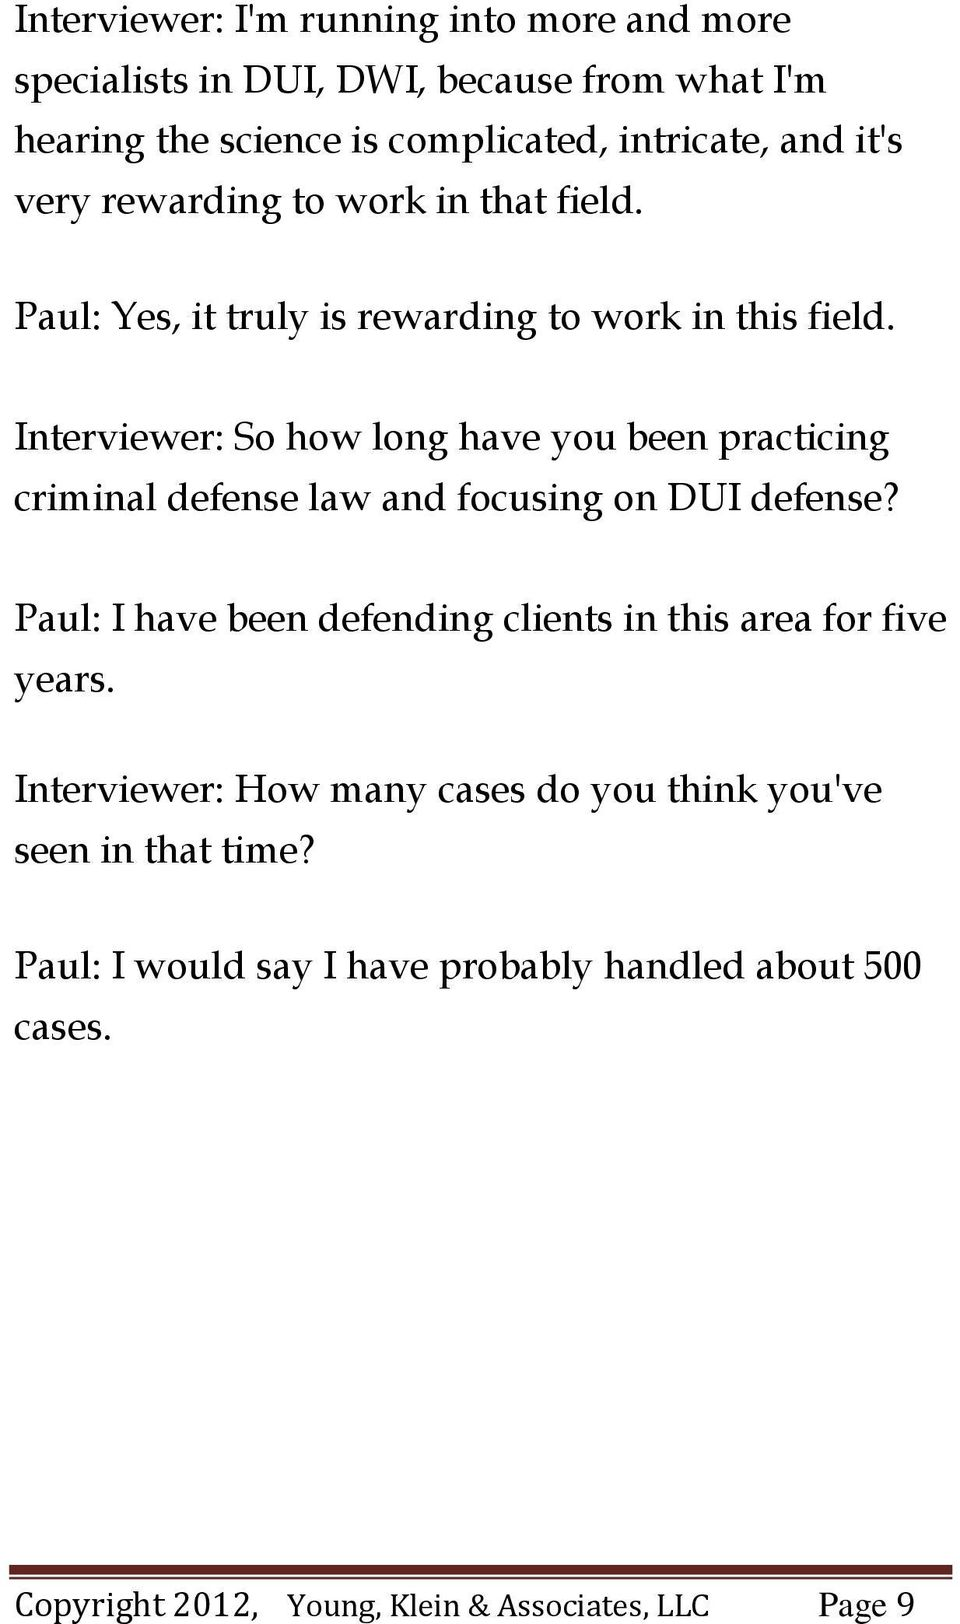 Interviewer: So how long have you been practicing criminal defense law and focusing on DUI defense?